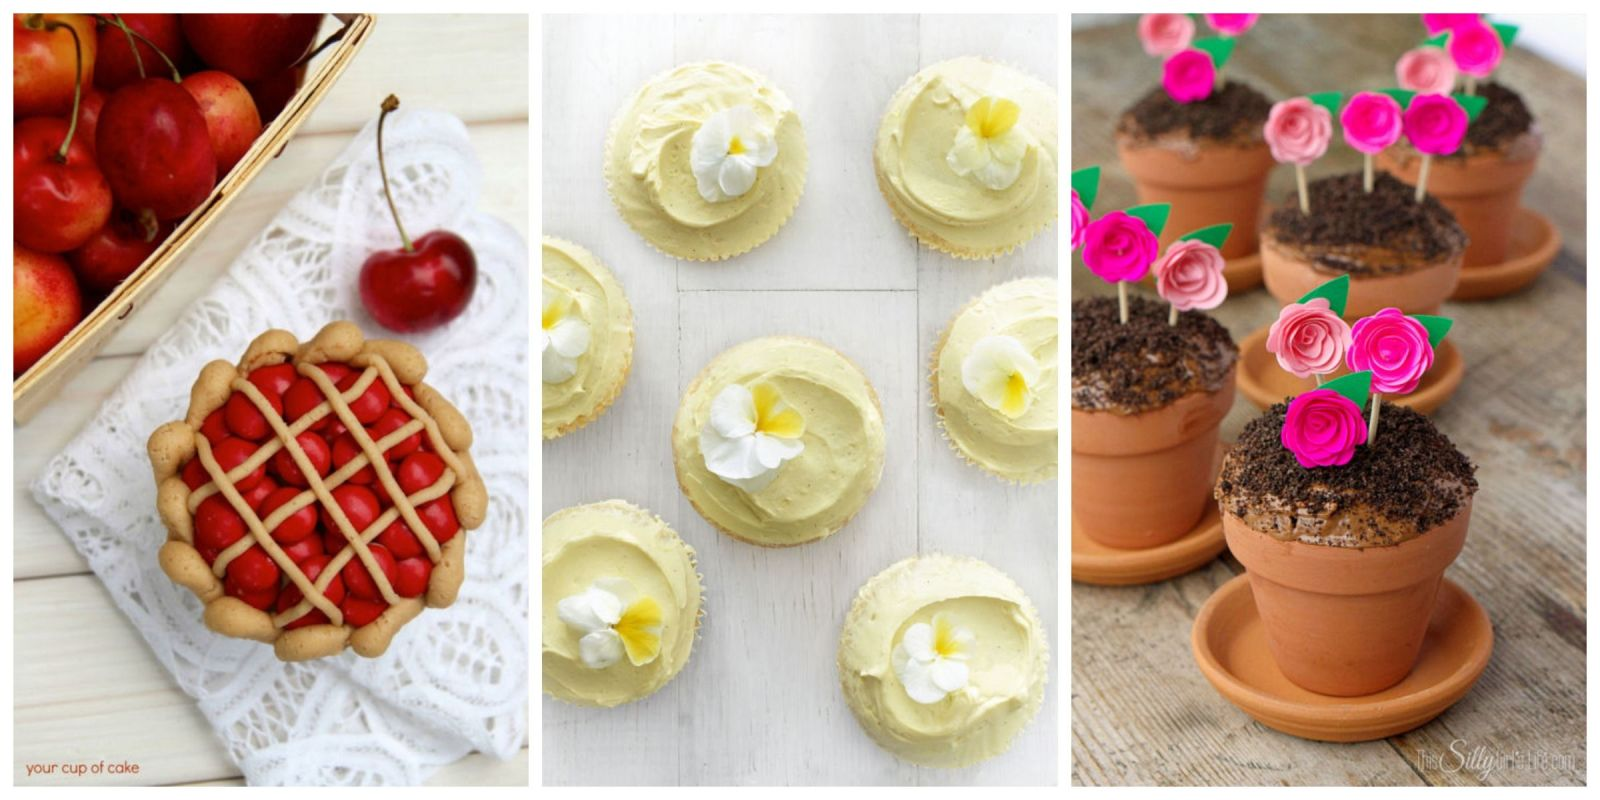 30 Best Cupcake Decorating Ideas - Easy Recipes for ...